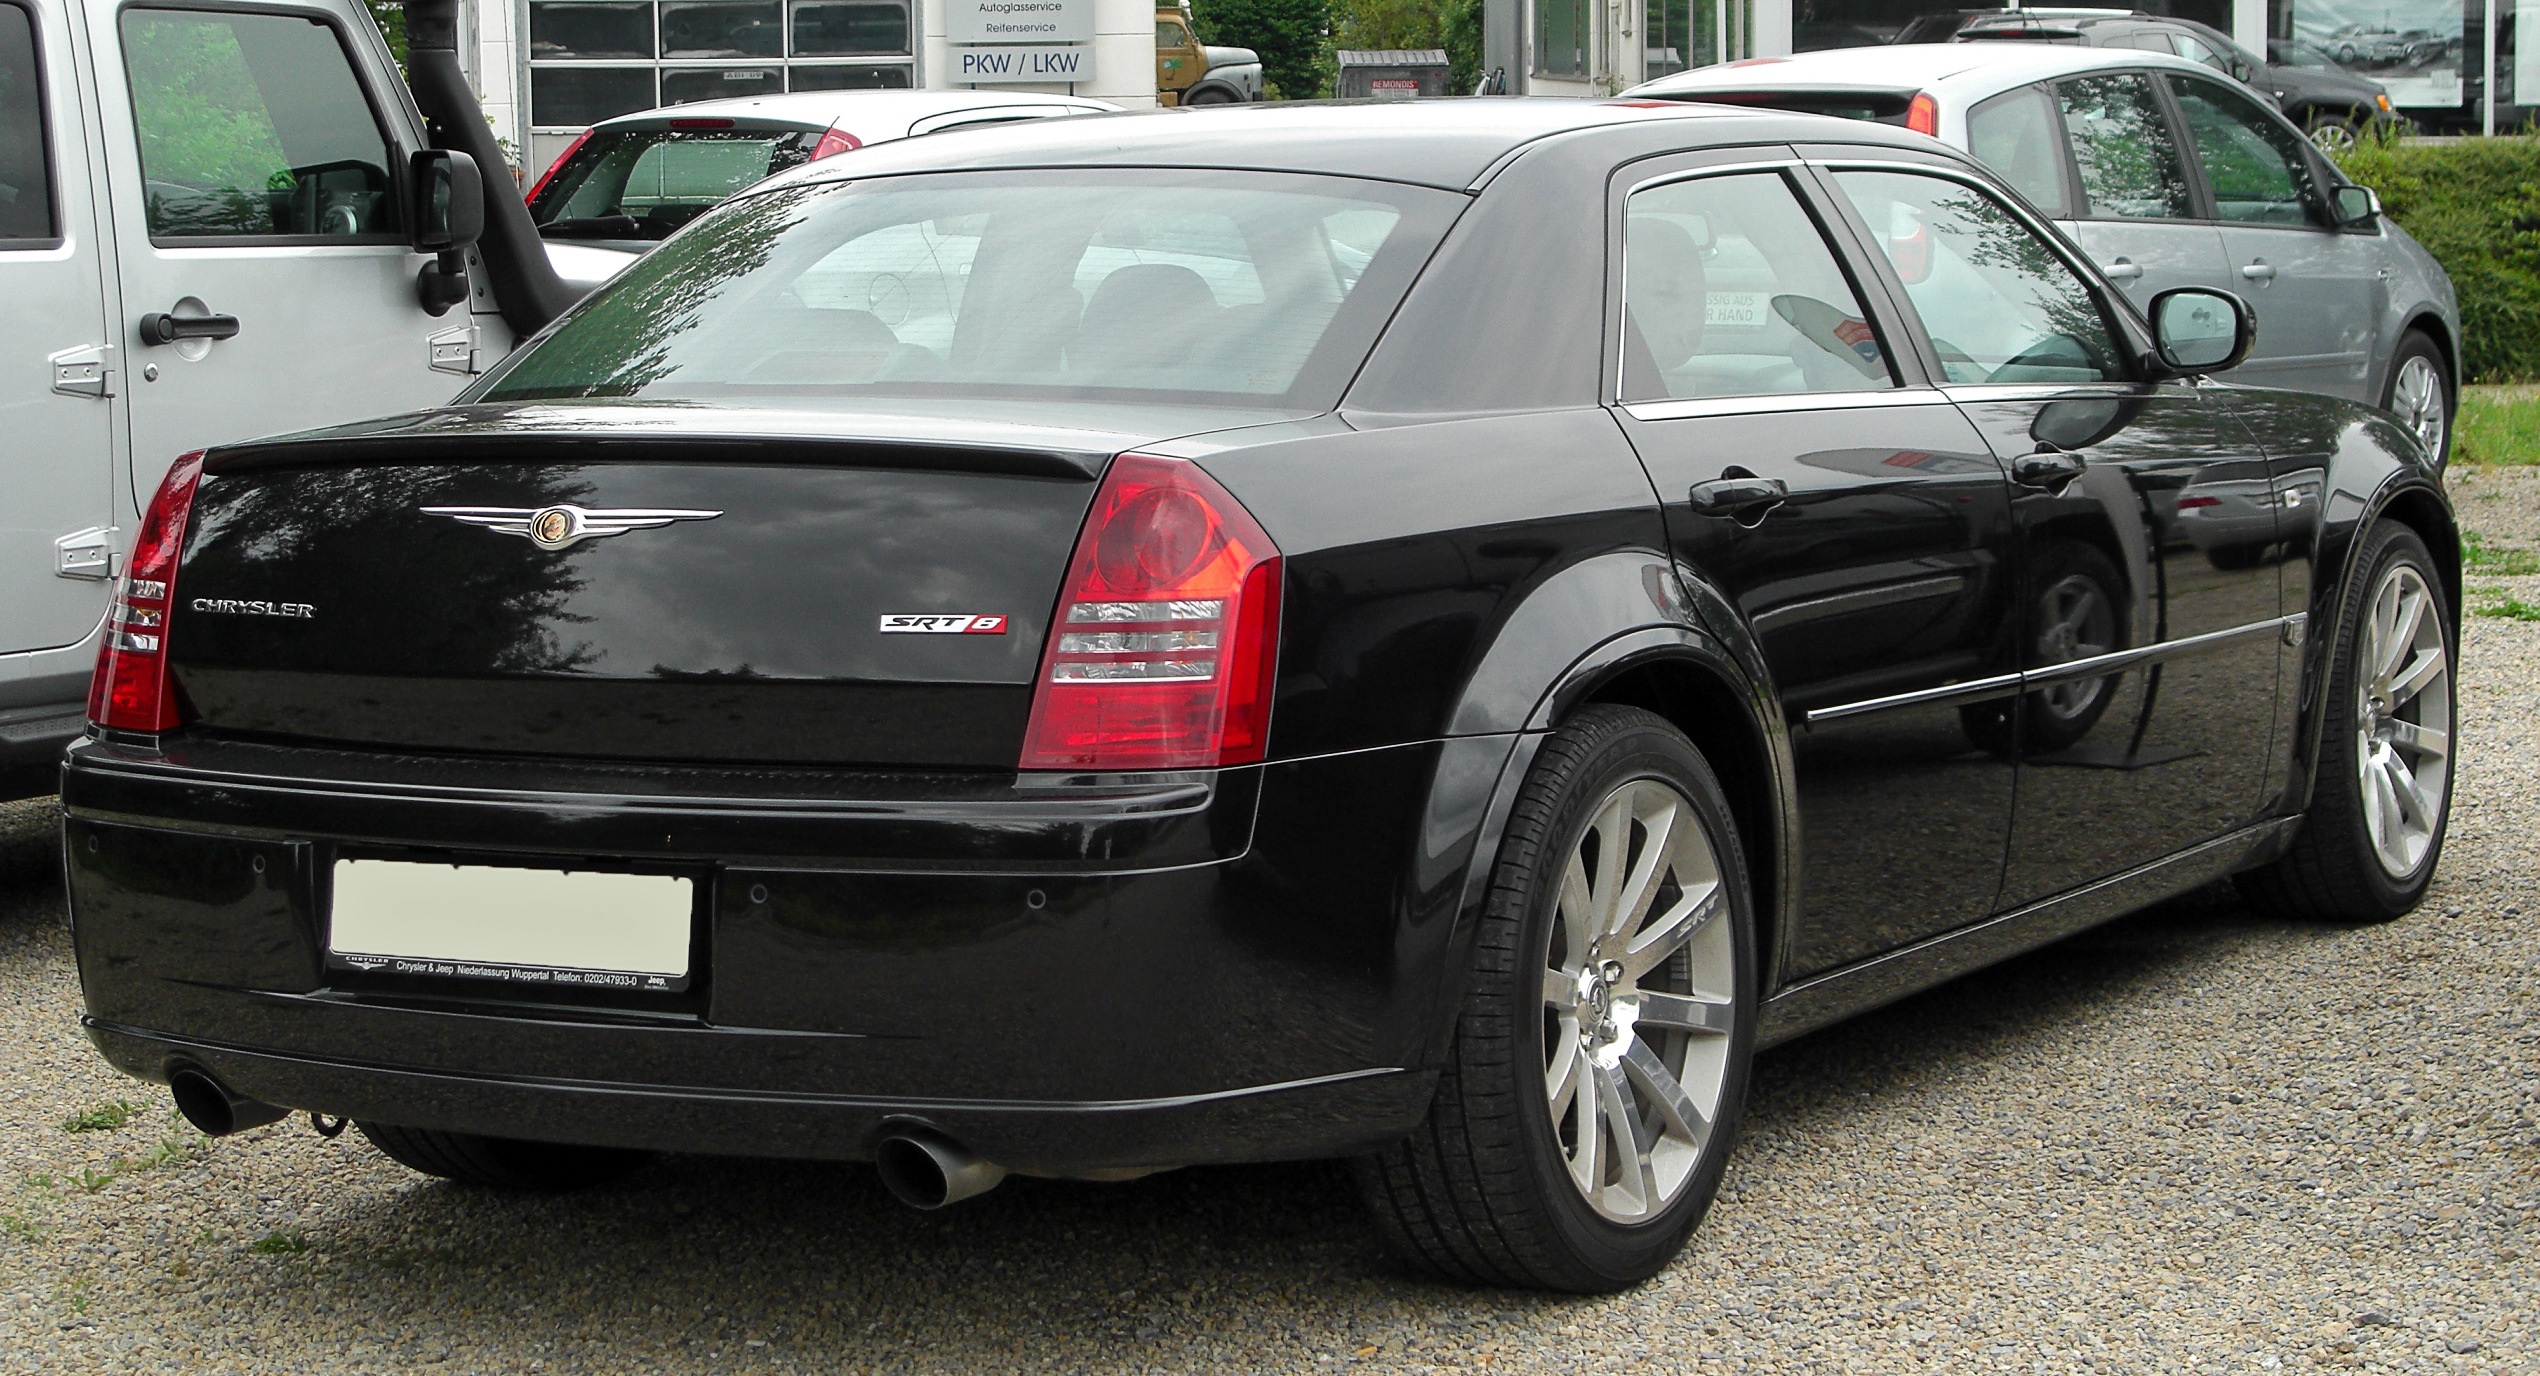 Chrysler 300C SRT8 I 2004 - 2010 Sedan #4